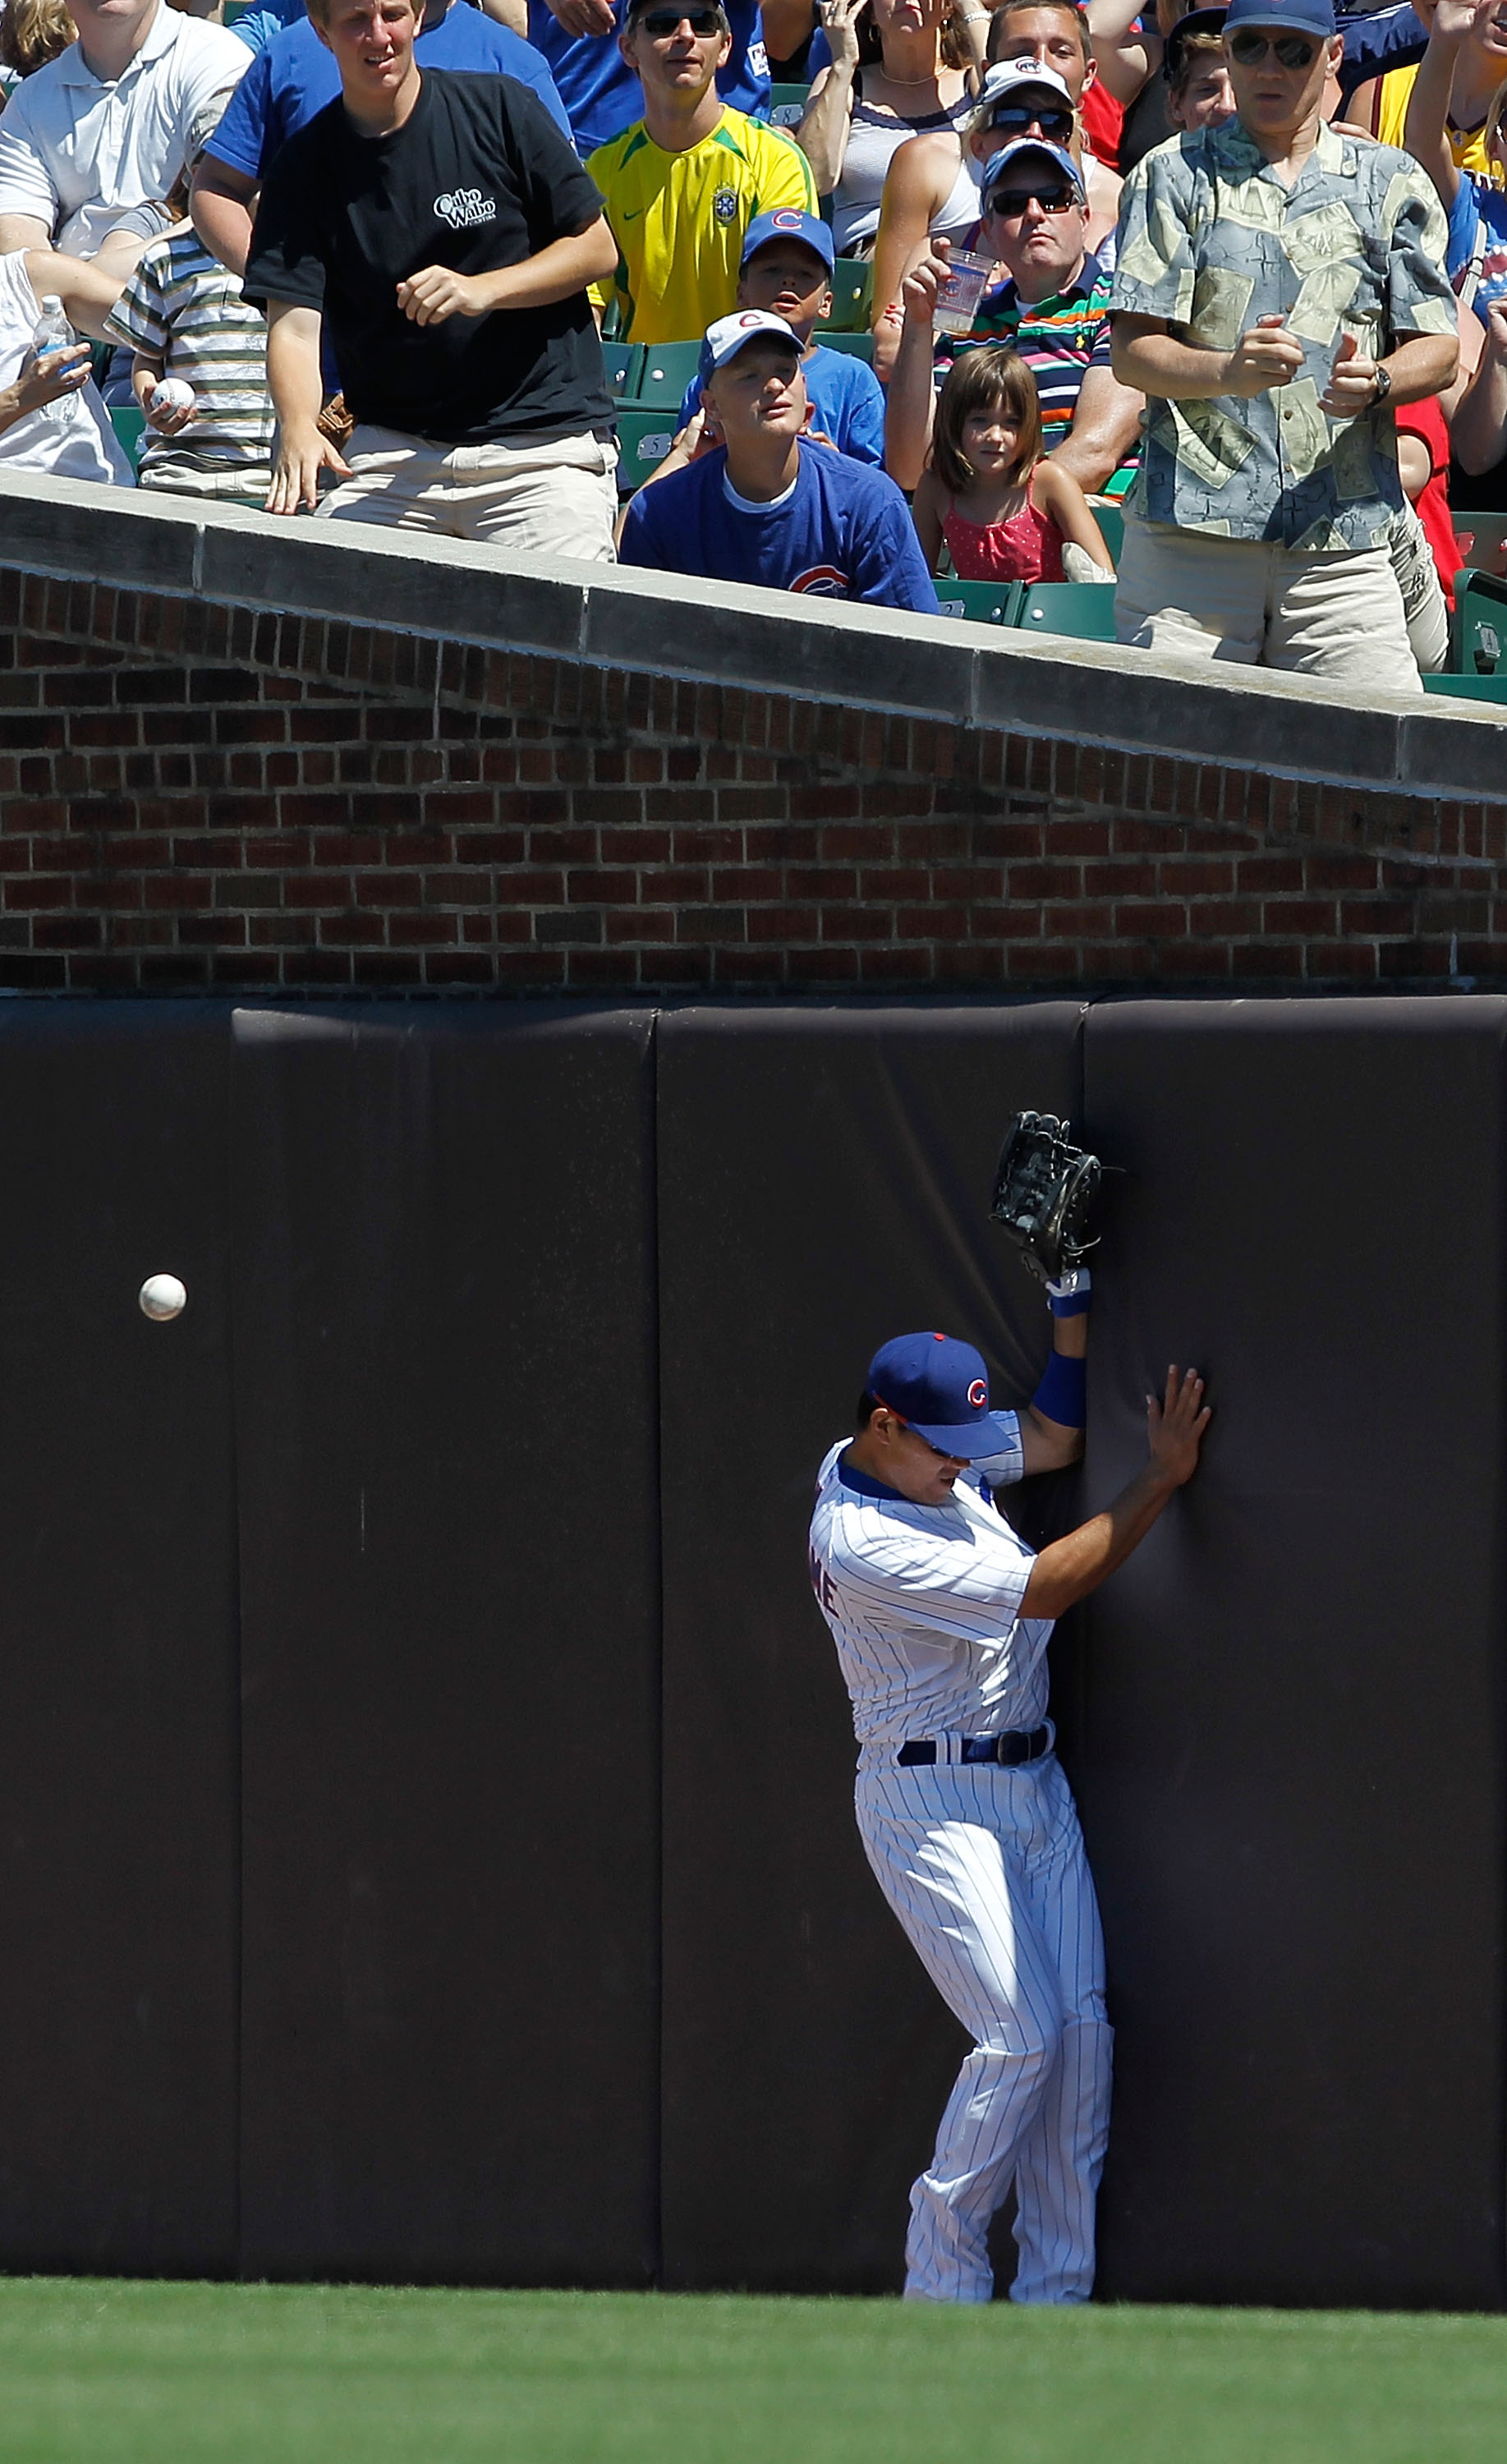 CHICAGO - JUNE 30: Kosuke Fukudome #1 of the Chicago Cubs hits the padded outfield wall while a foul ball bounces over his head during a game against the Pittsburgh Pirates at Wrigley Field on June 30, 2010 in Chicago, Illinois. The Pirates defeated the C